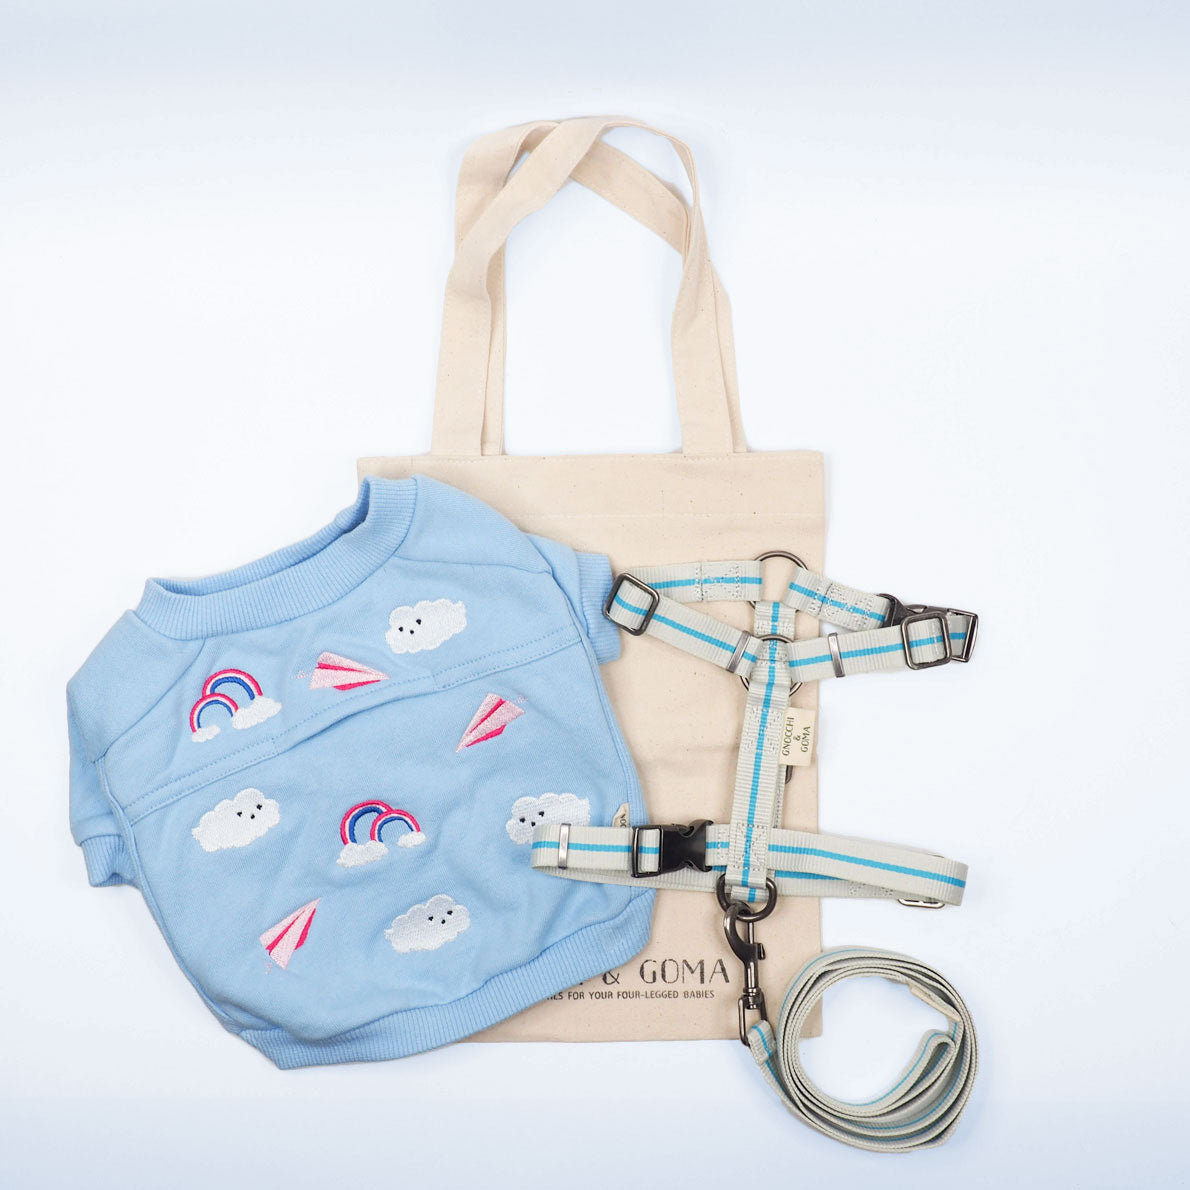 Duo Buckle Strap Harness Set - Cream/Light Blue